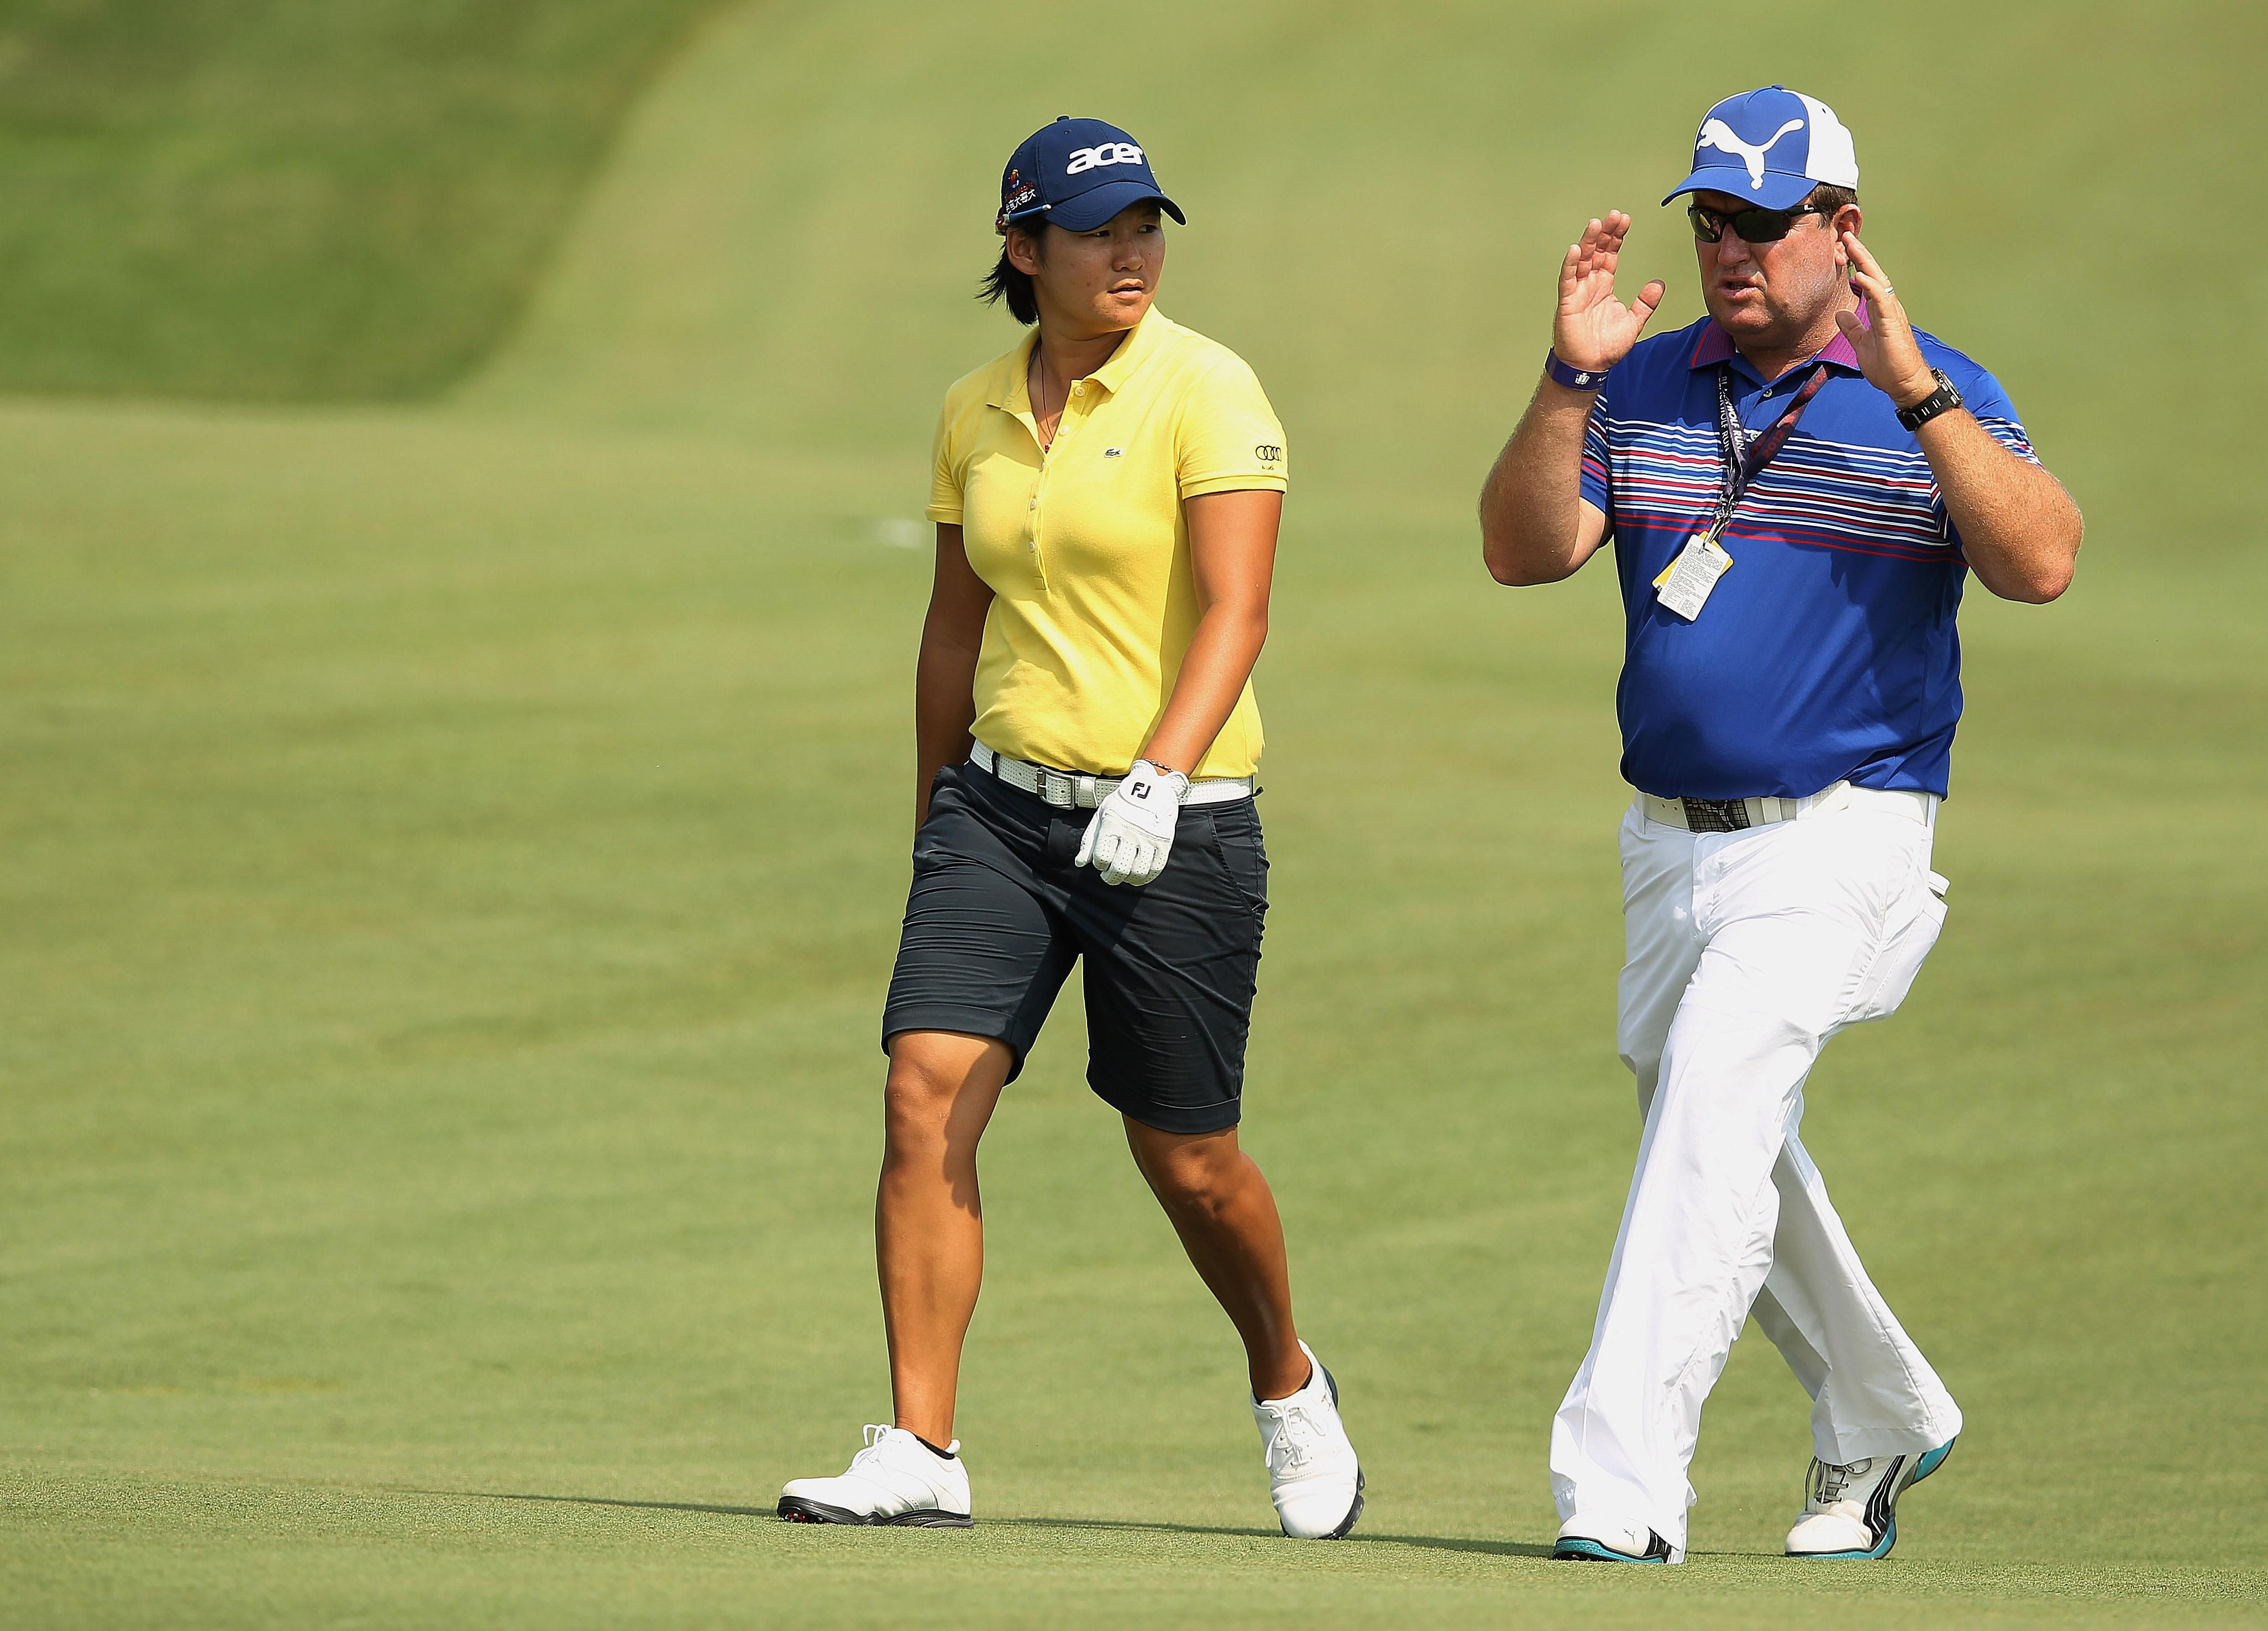 Yani Tseng of Taiwan (L) walks with her coach Gary Gilchrist during a practice round prior to the start of the 2012 U.S. Women's Open